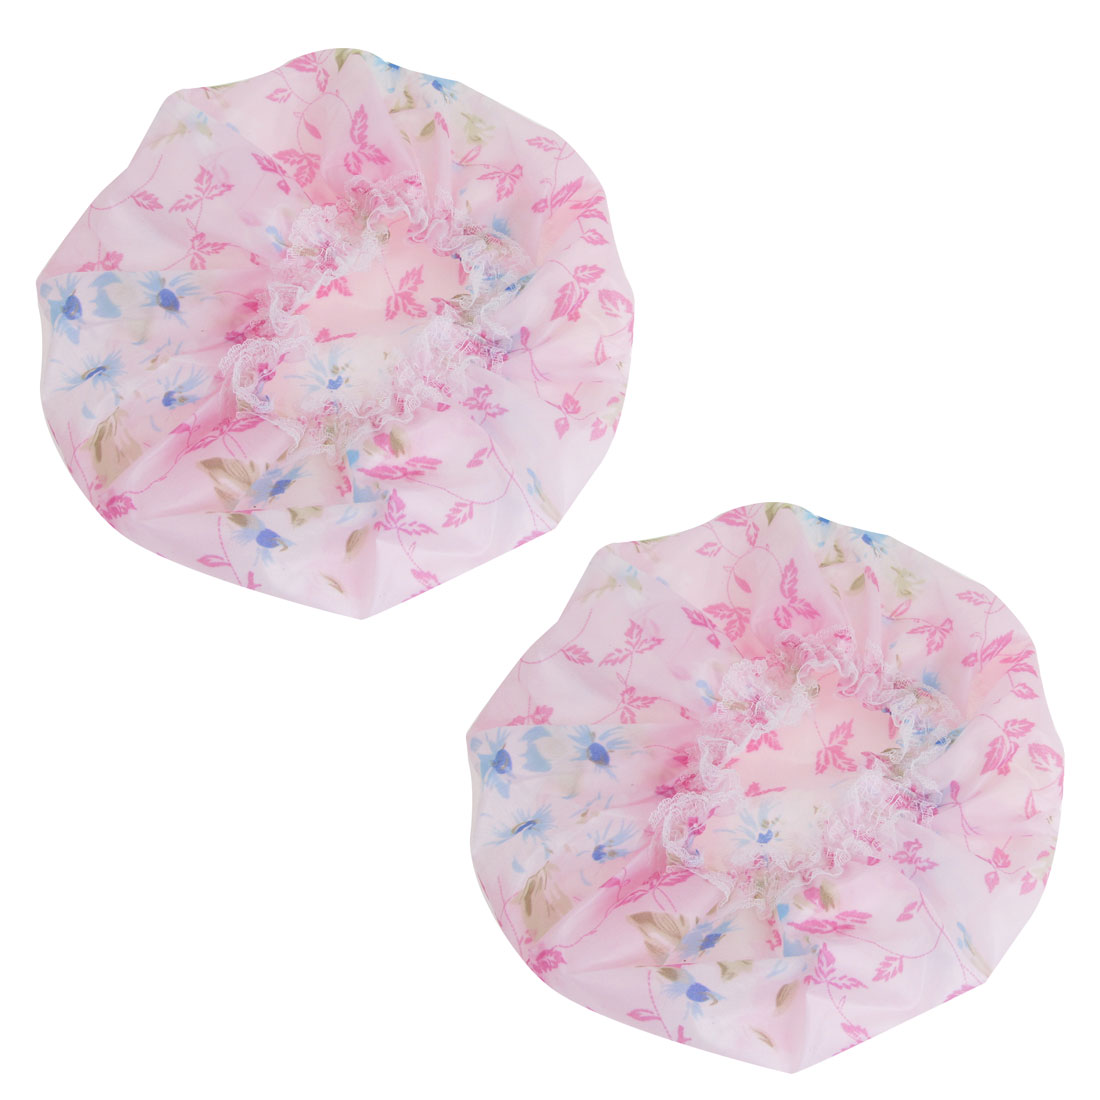 2 Pcs Pink Blue Water Resistant Nylon Lace Accent Shower Cap for Woman